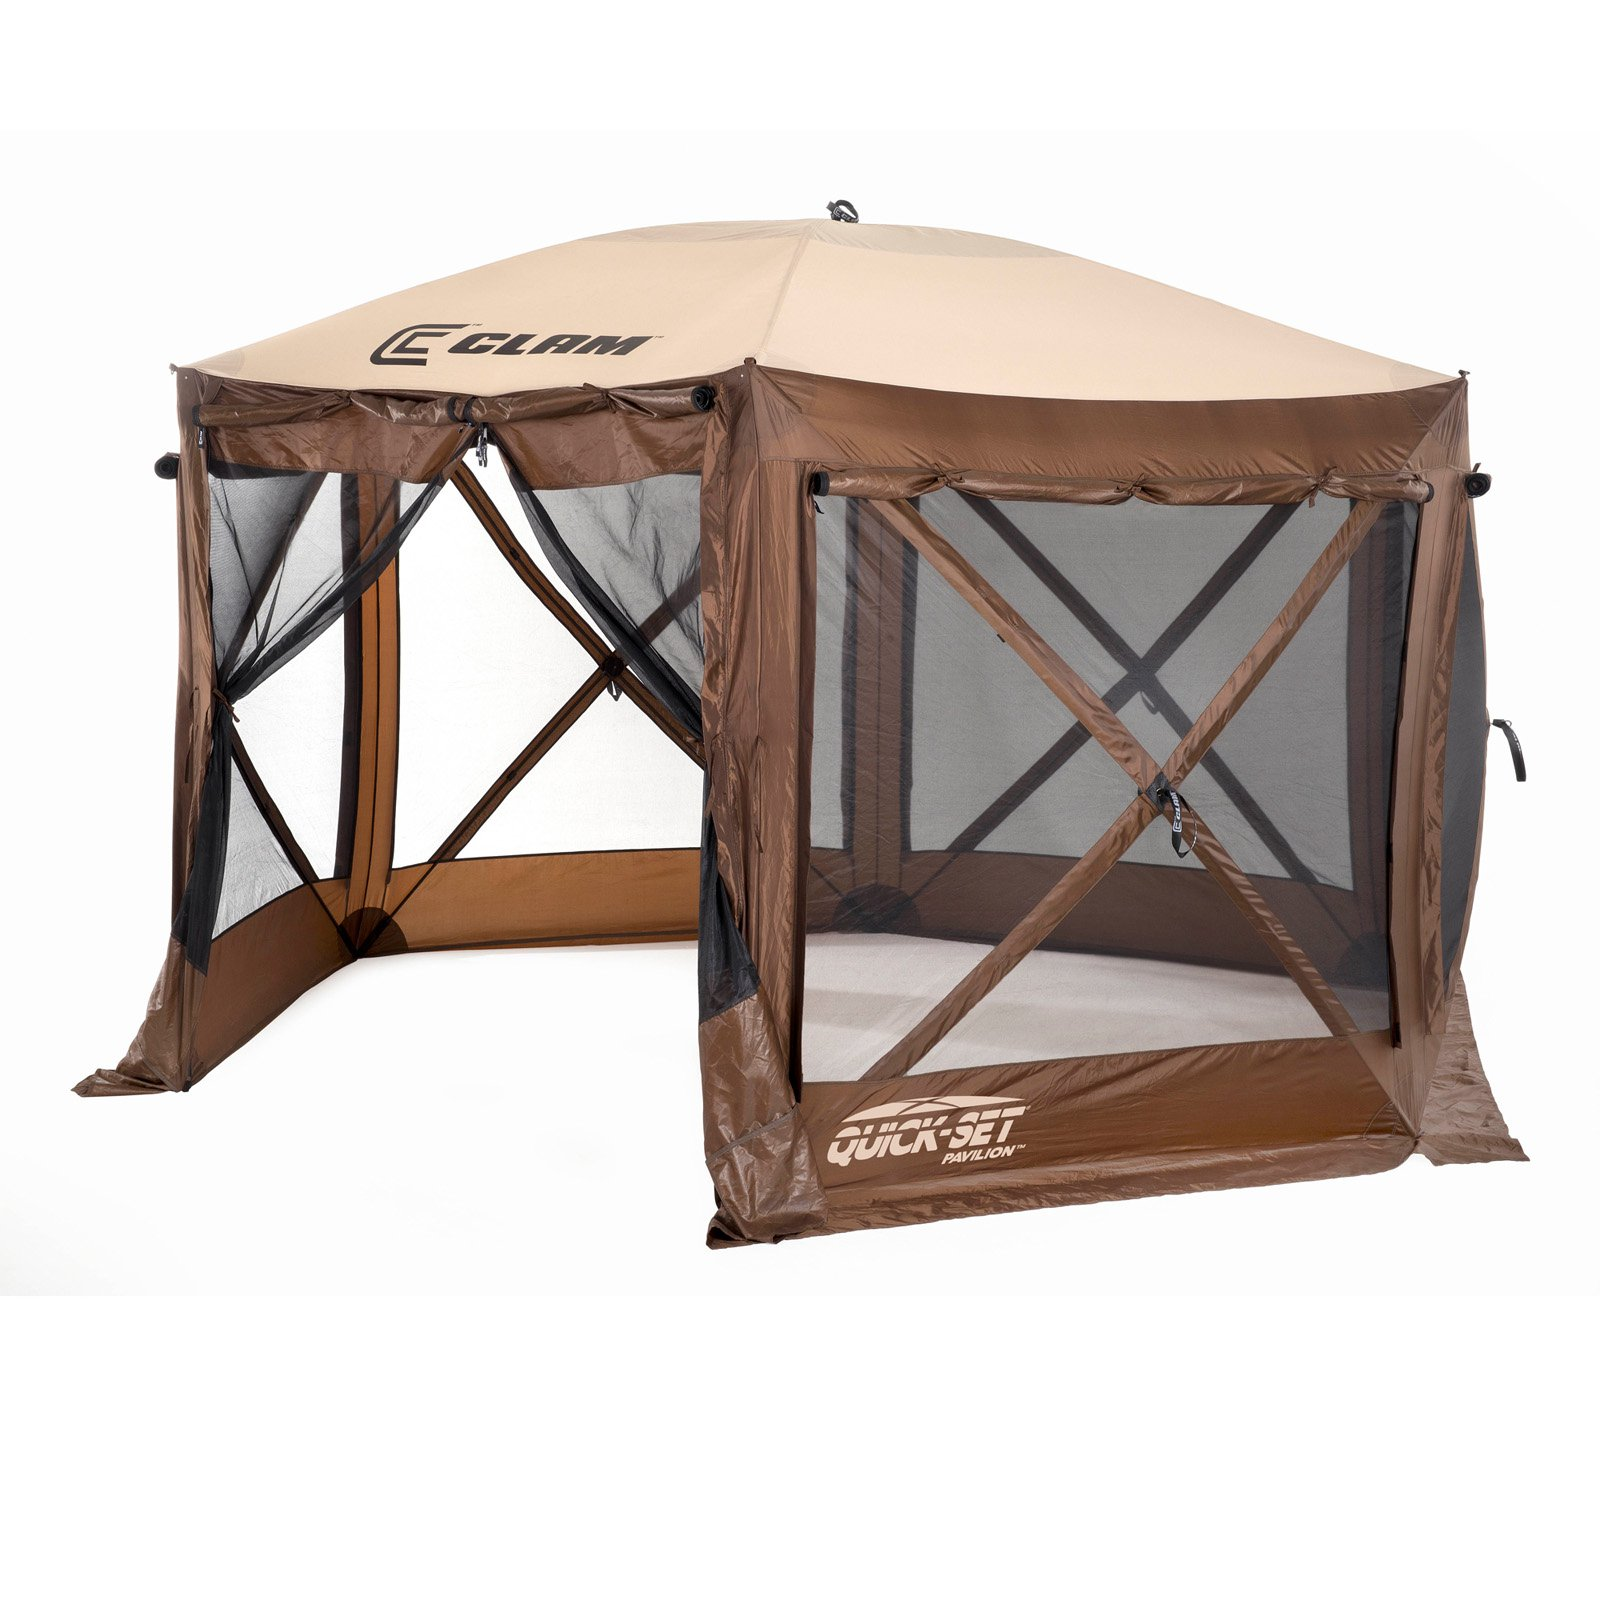 Clam Quick-Set Pavilion 6 Side DLX Canopy Shelter by Quick-Set